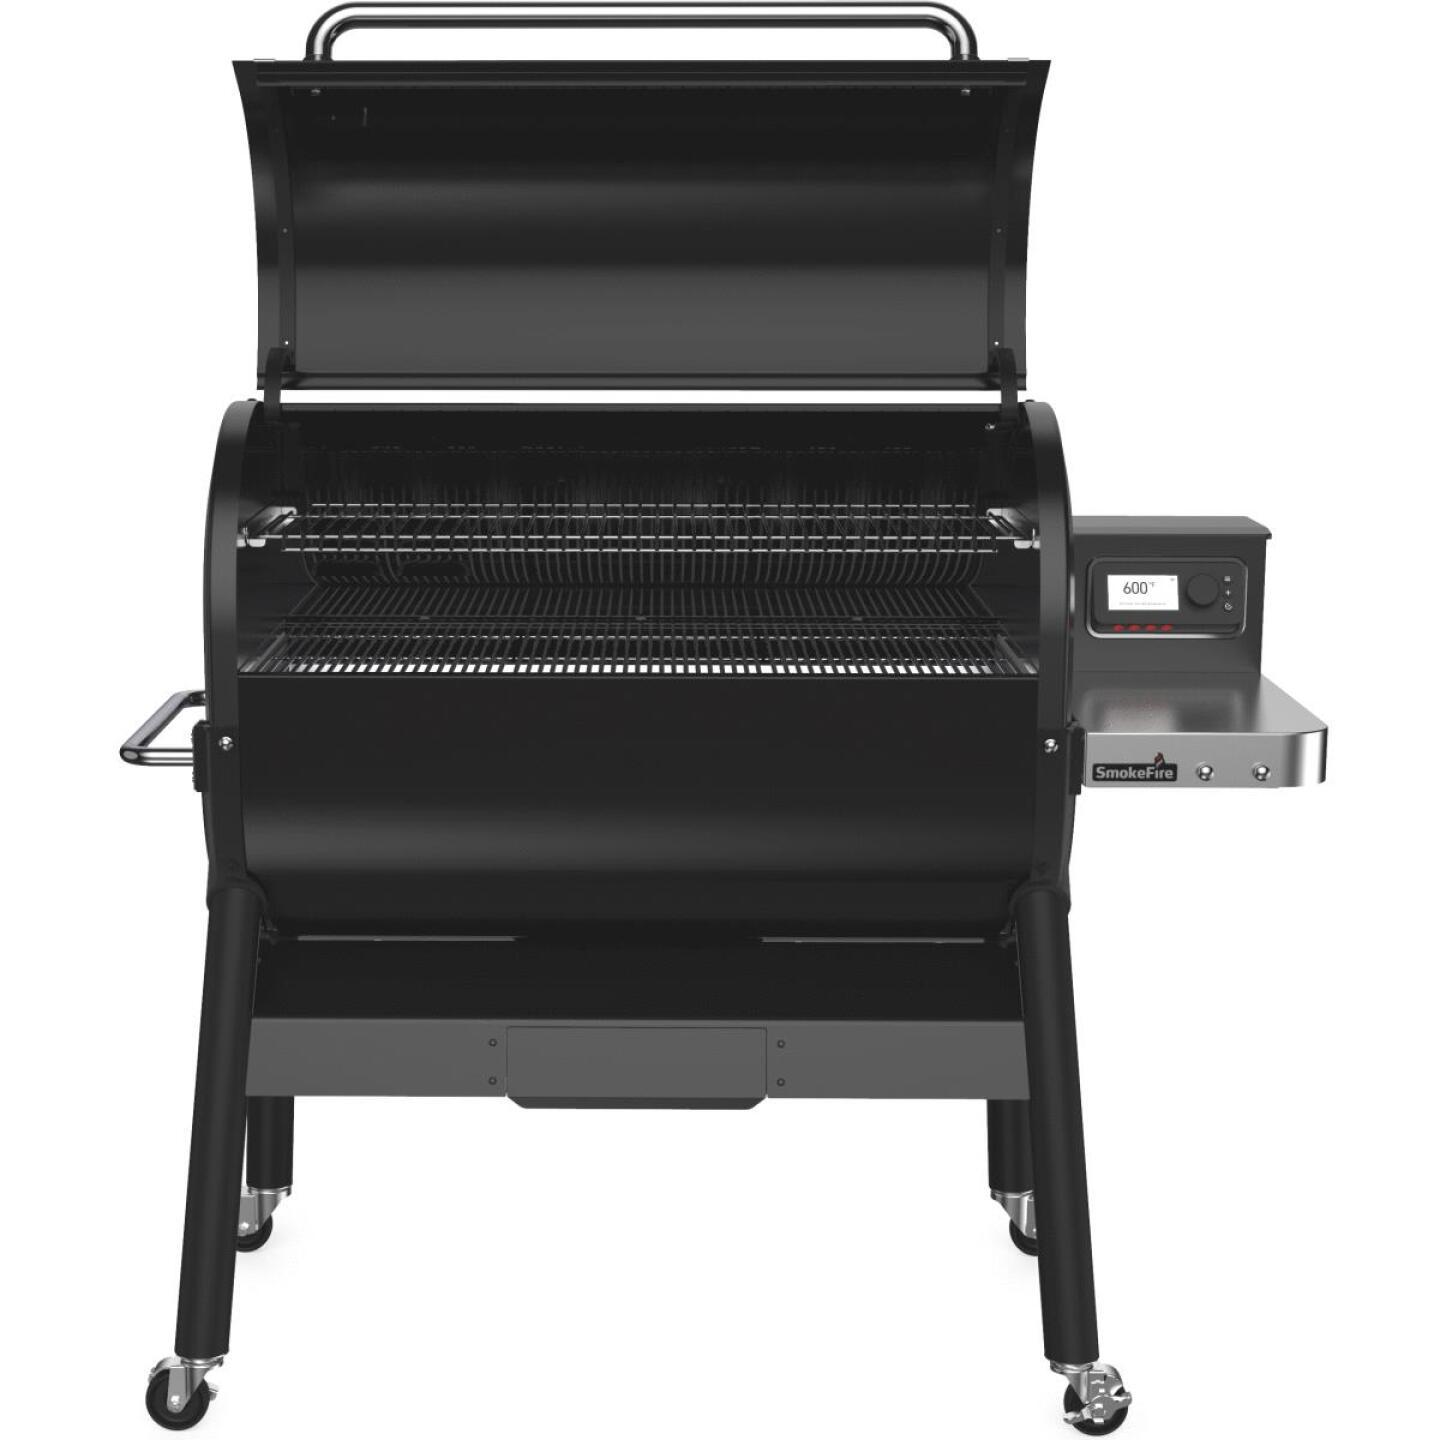 Weber SmokeFire EX6 Black 1008 Sq. In. Wood Pellet Grill Image 3